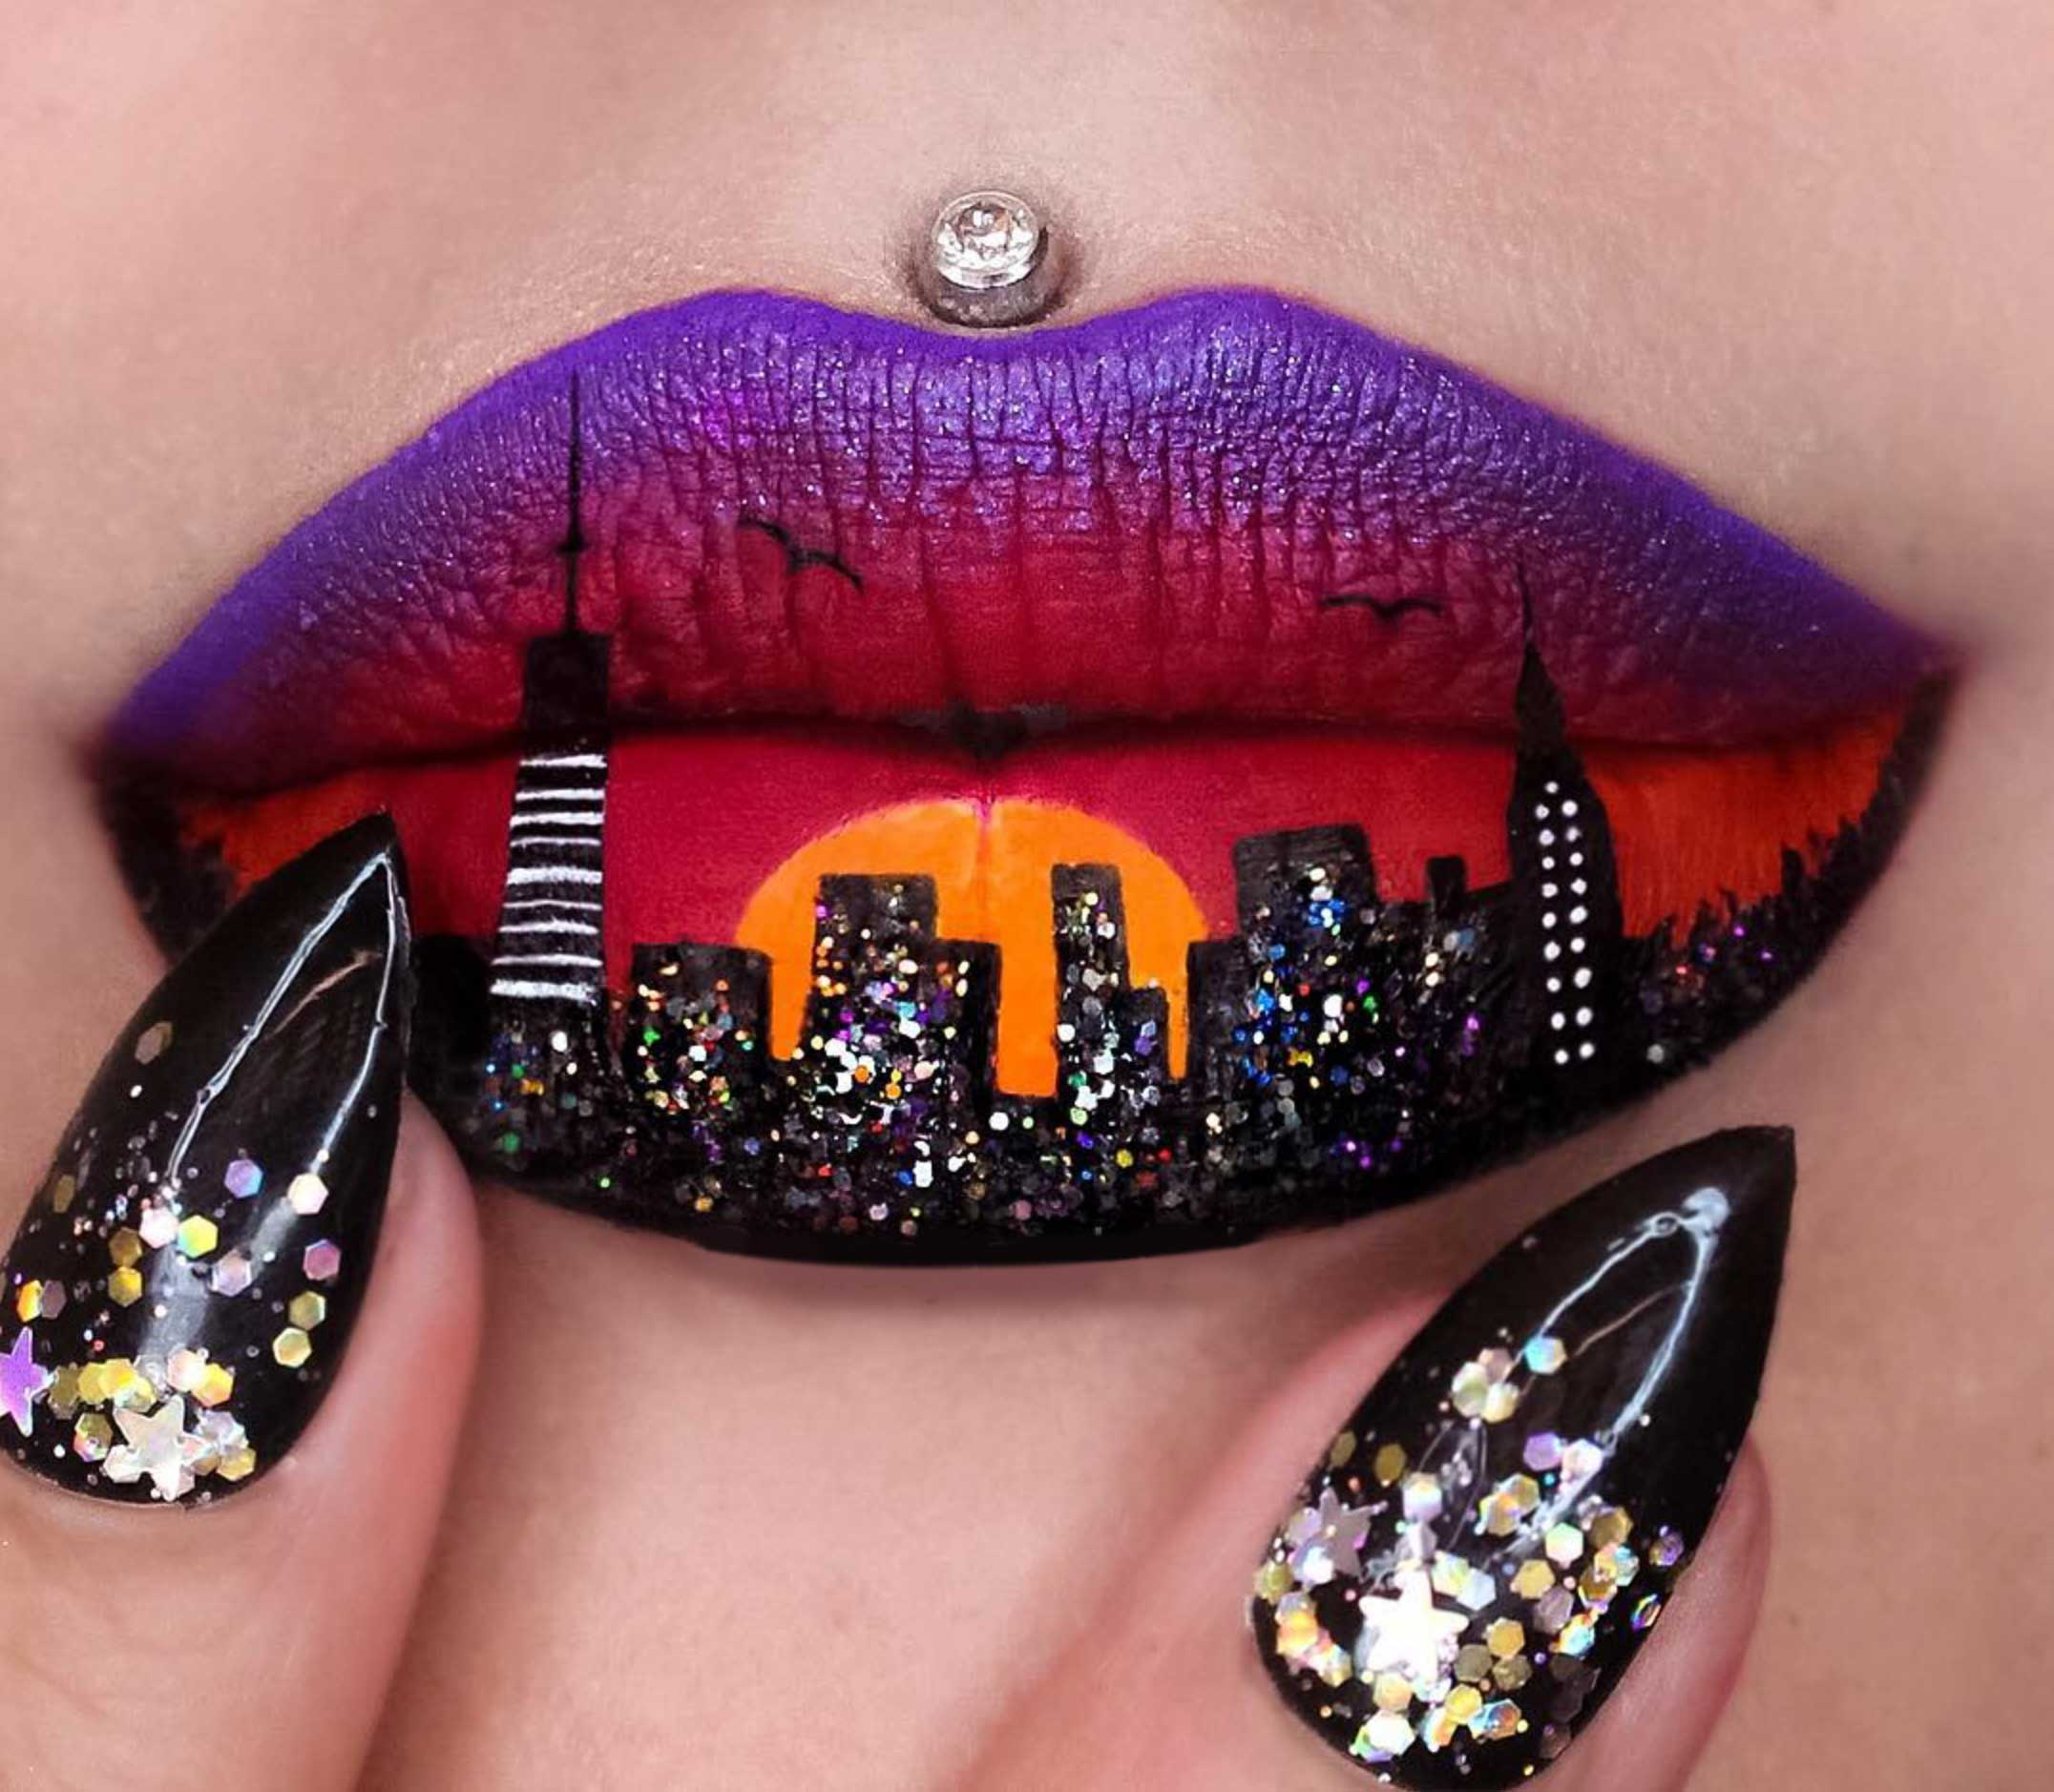 Image of Lip Painting by Jazmina Daniel